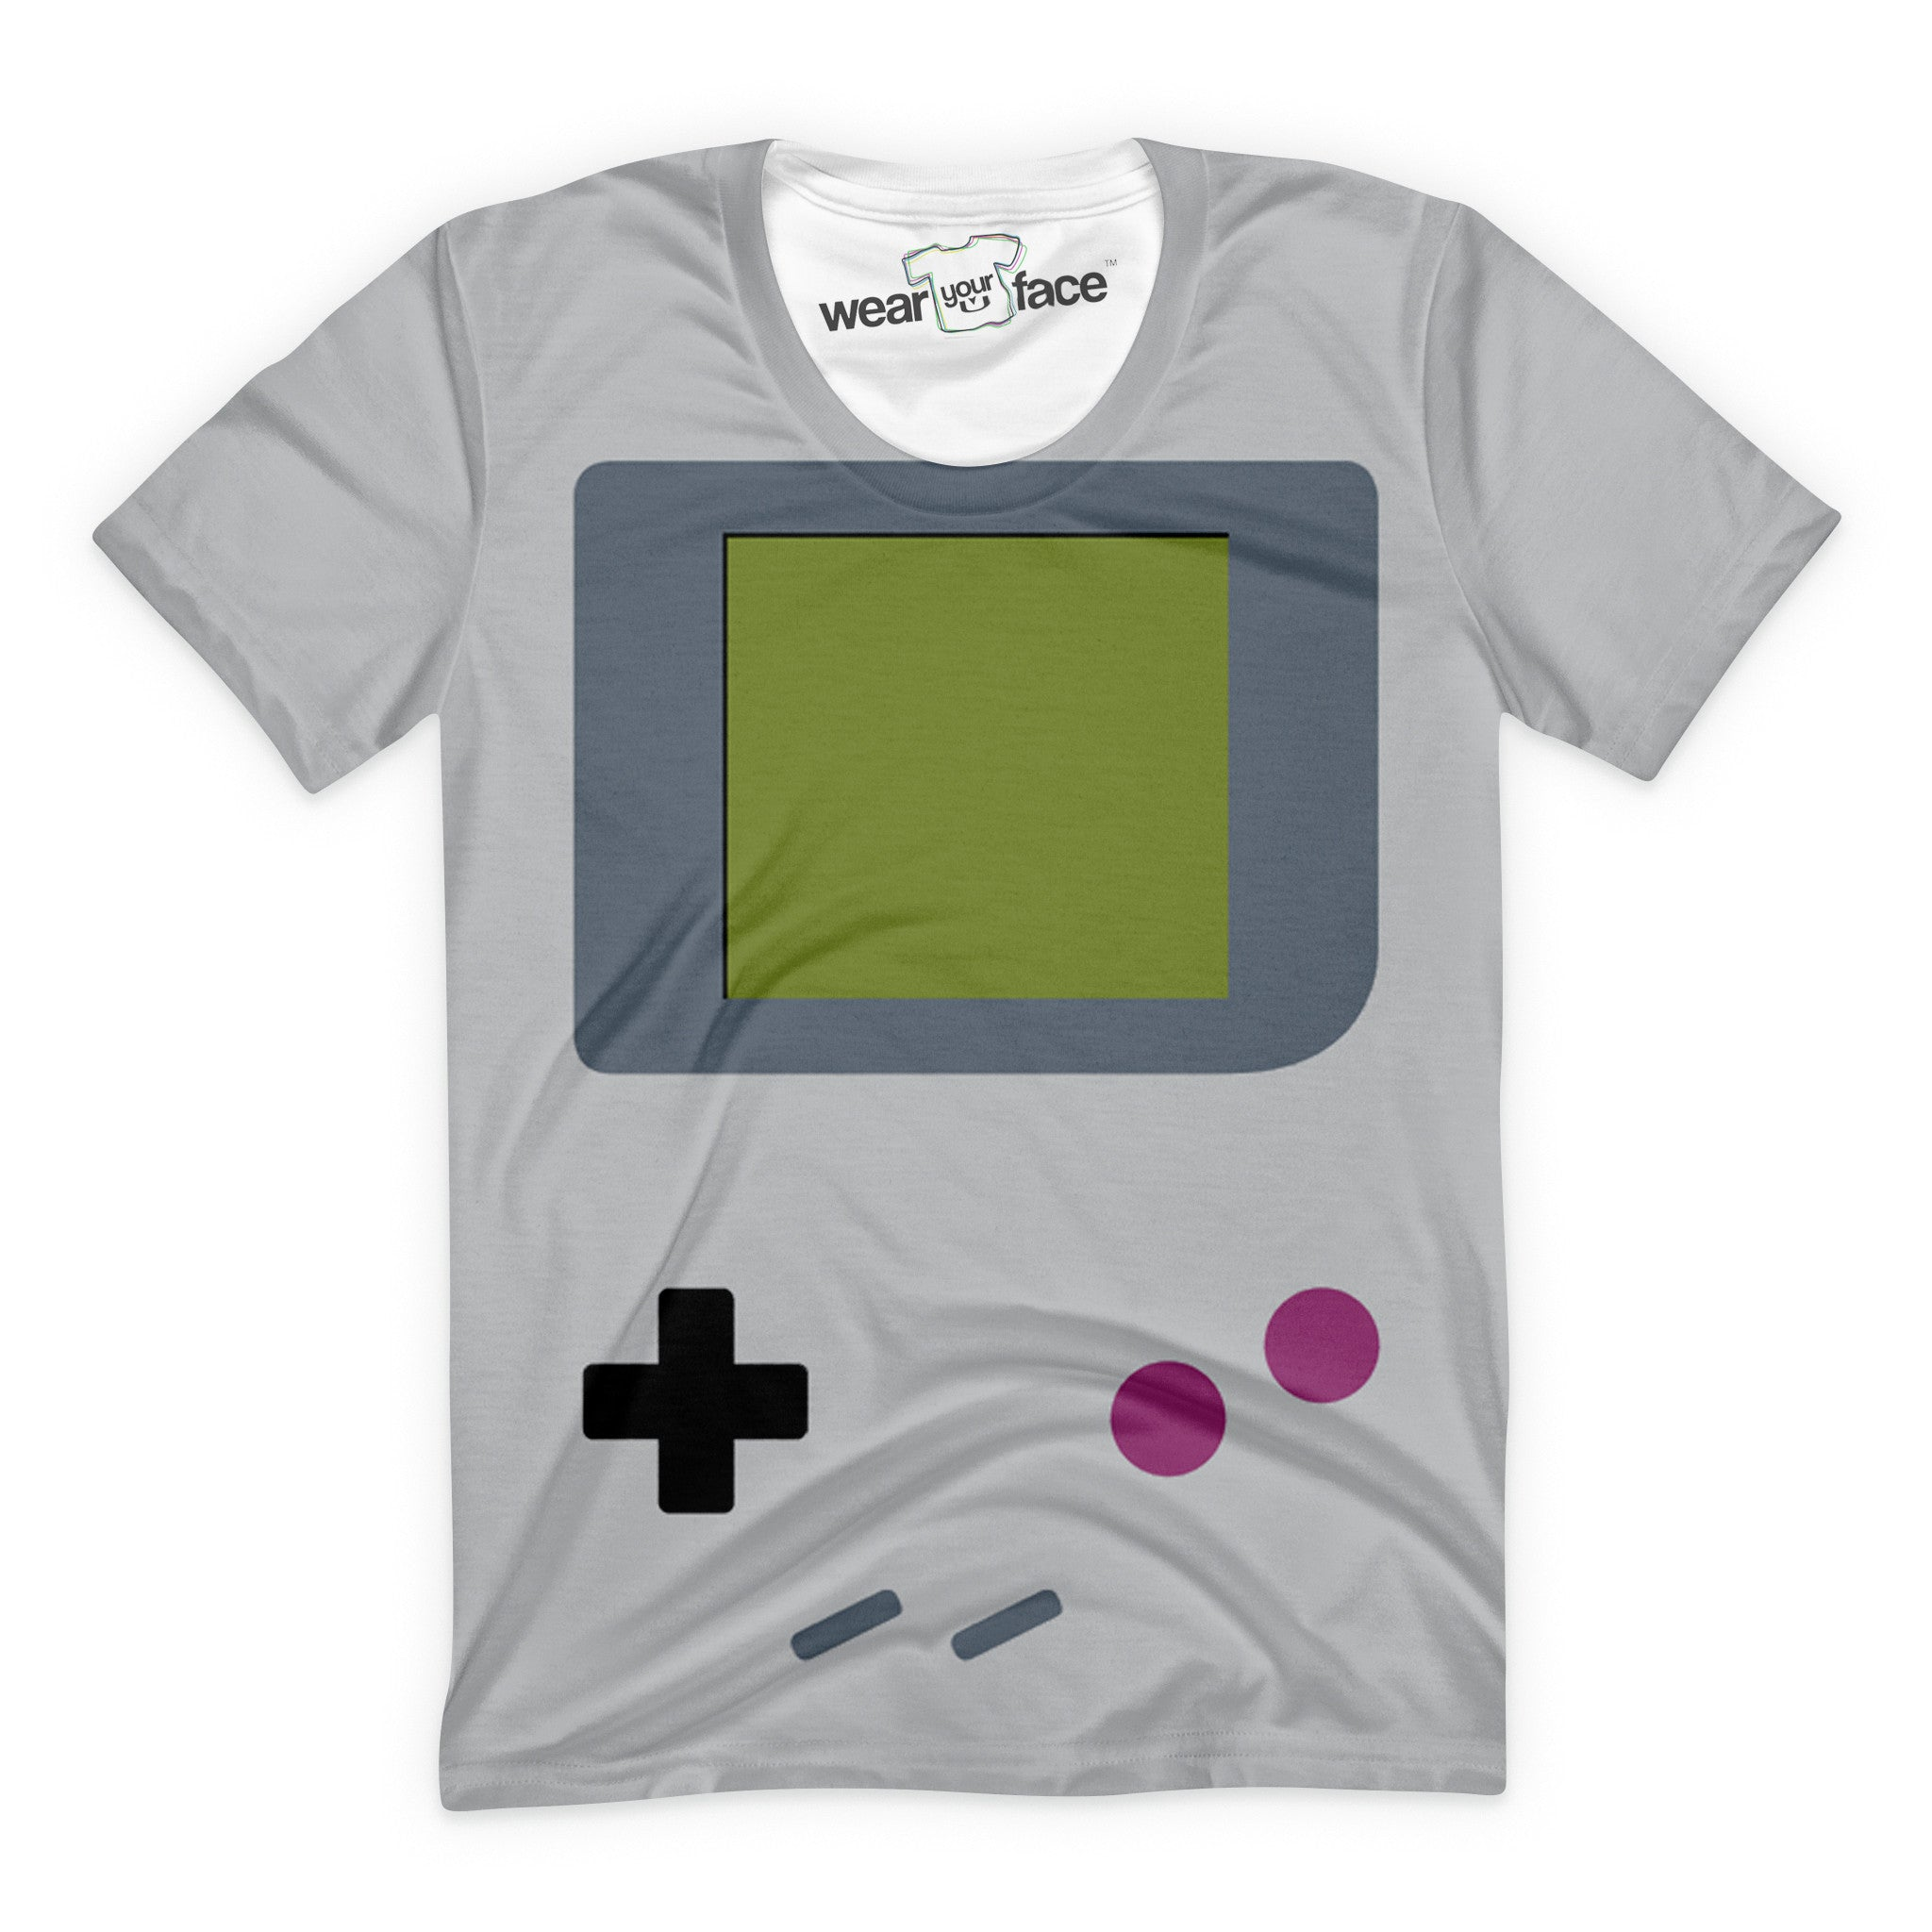 The OG Gameboy T-Shirt